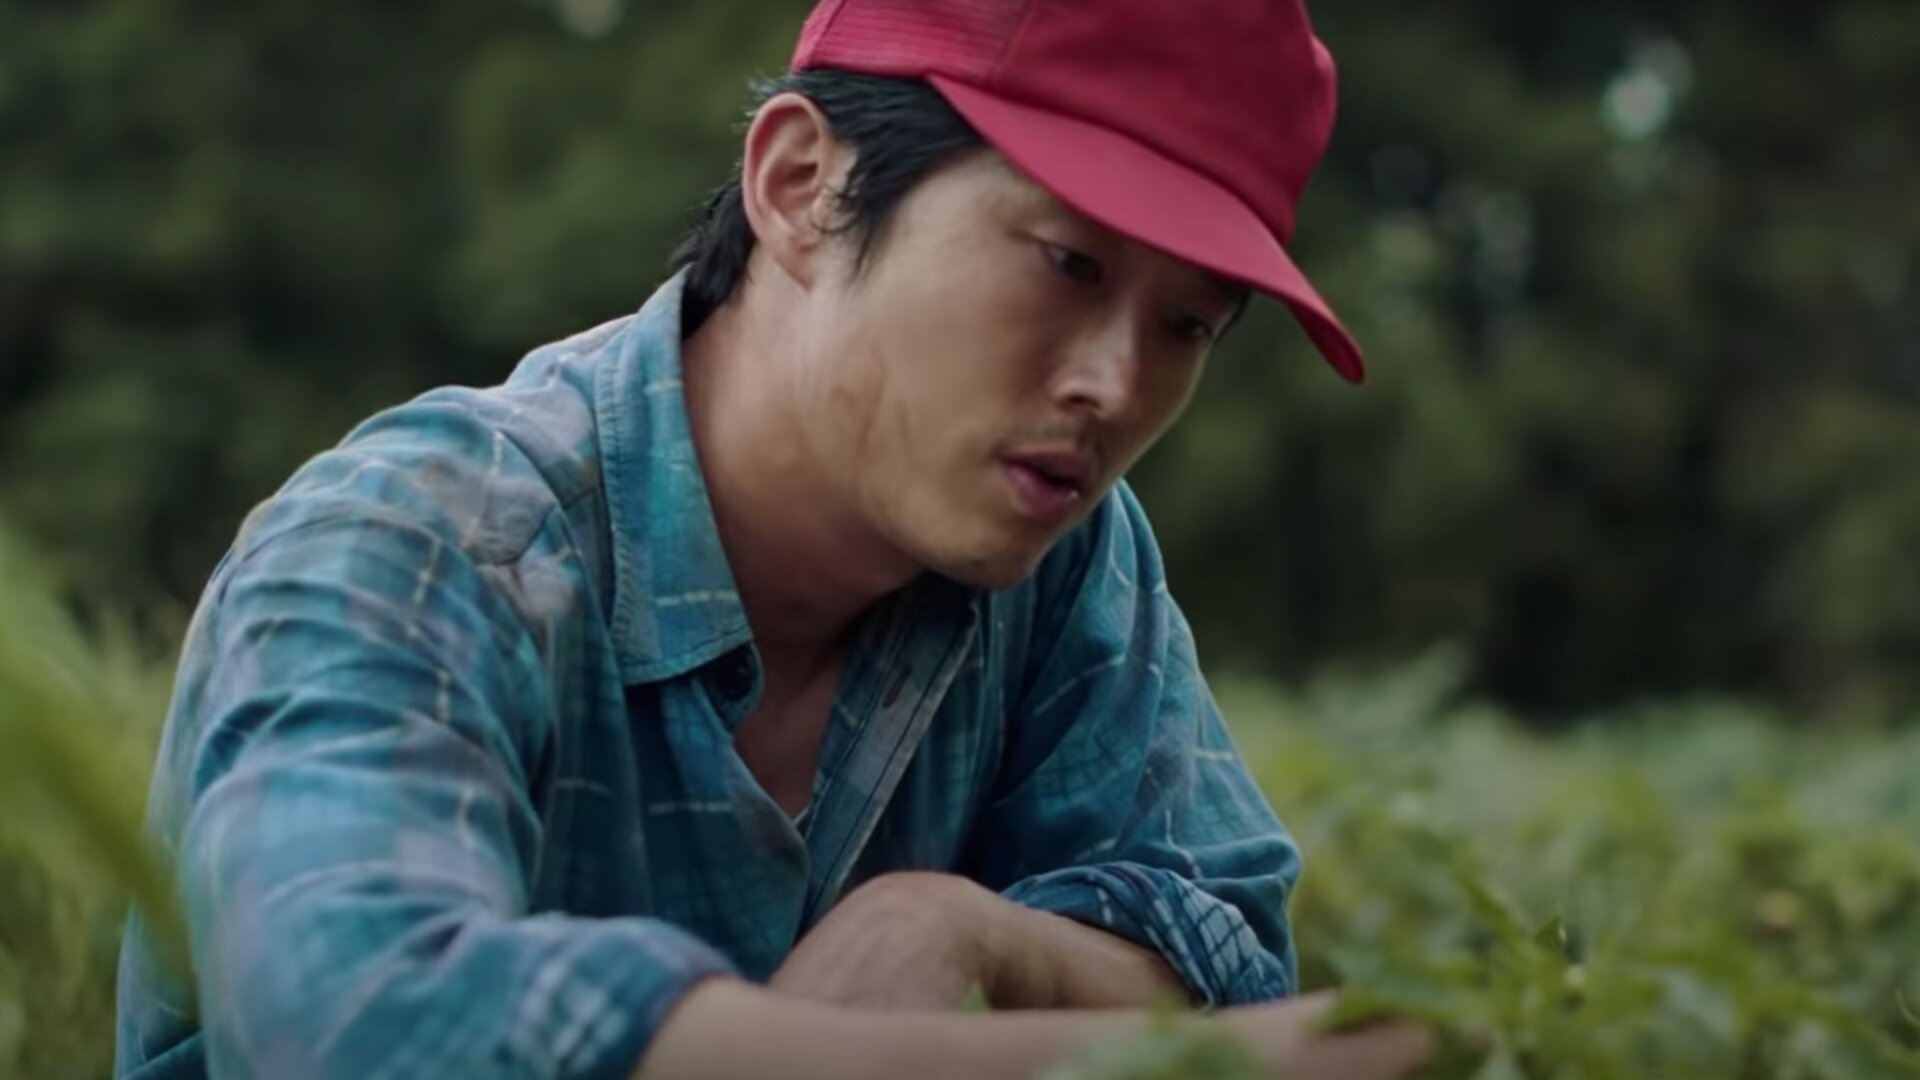 Trailer For Steven Yeun's MINARI Which Tells a Tender Story of a Korean Family in Search of The American Dream — GeekTyrant